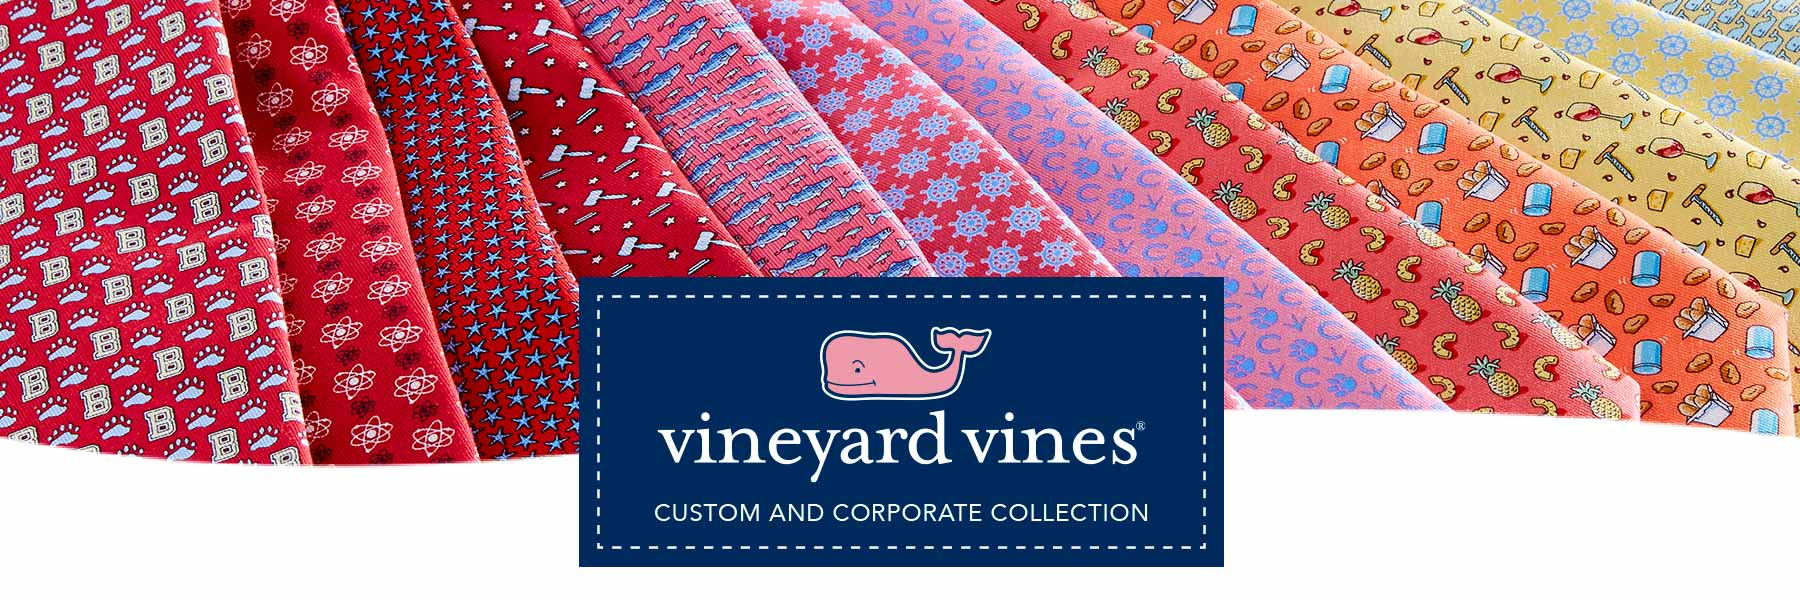 e168ca5b4 vineyard vines Custom and Corporate Collection.